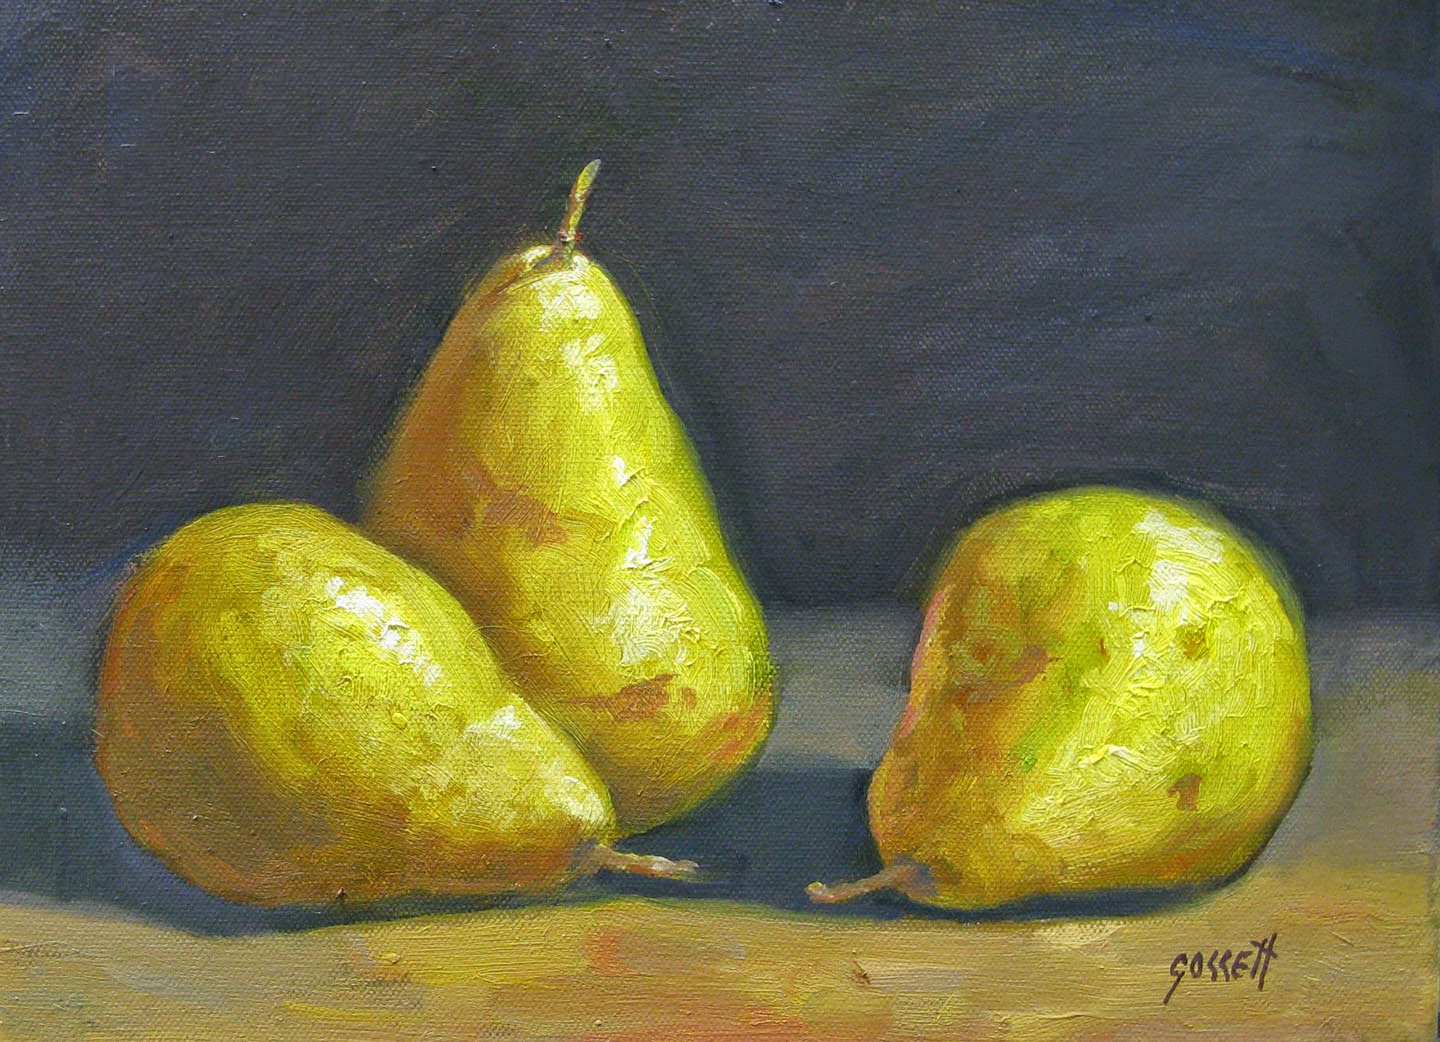 """Pear Trio"" by Warren - for sale on eBay - click on image"